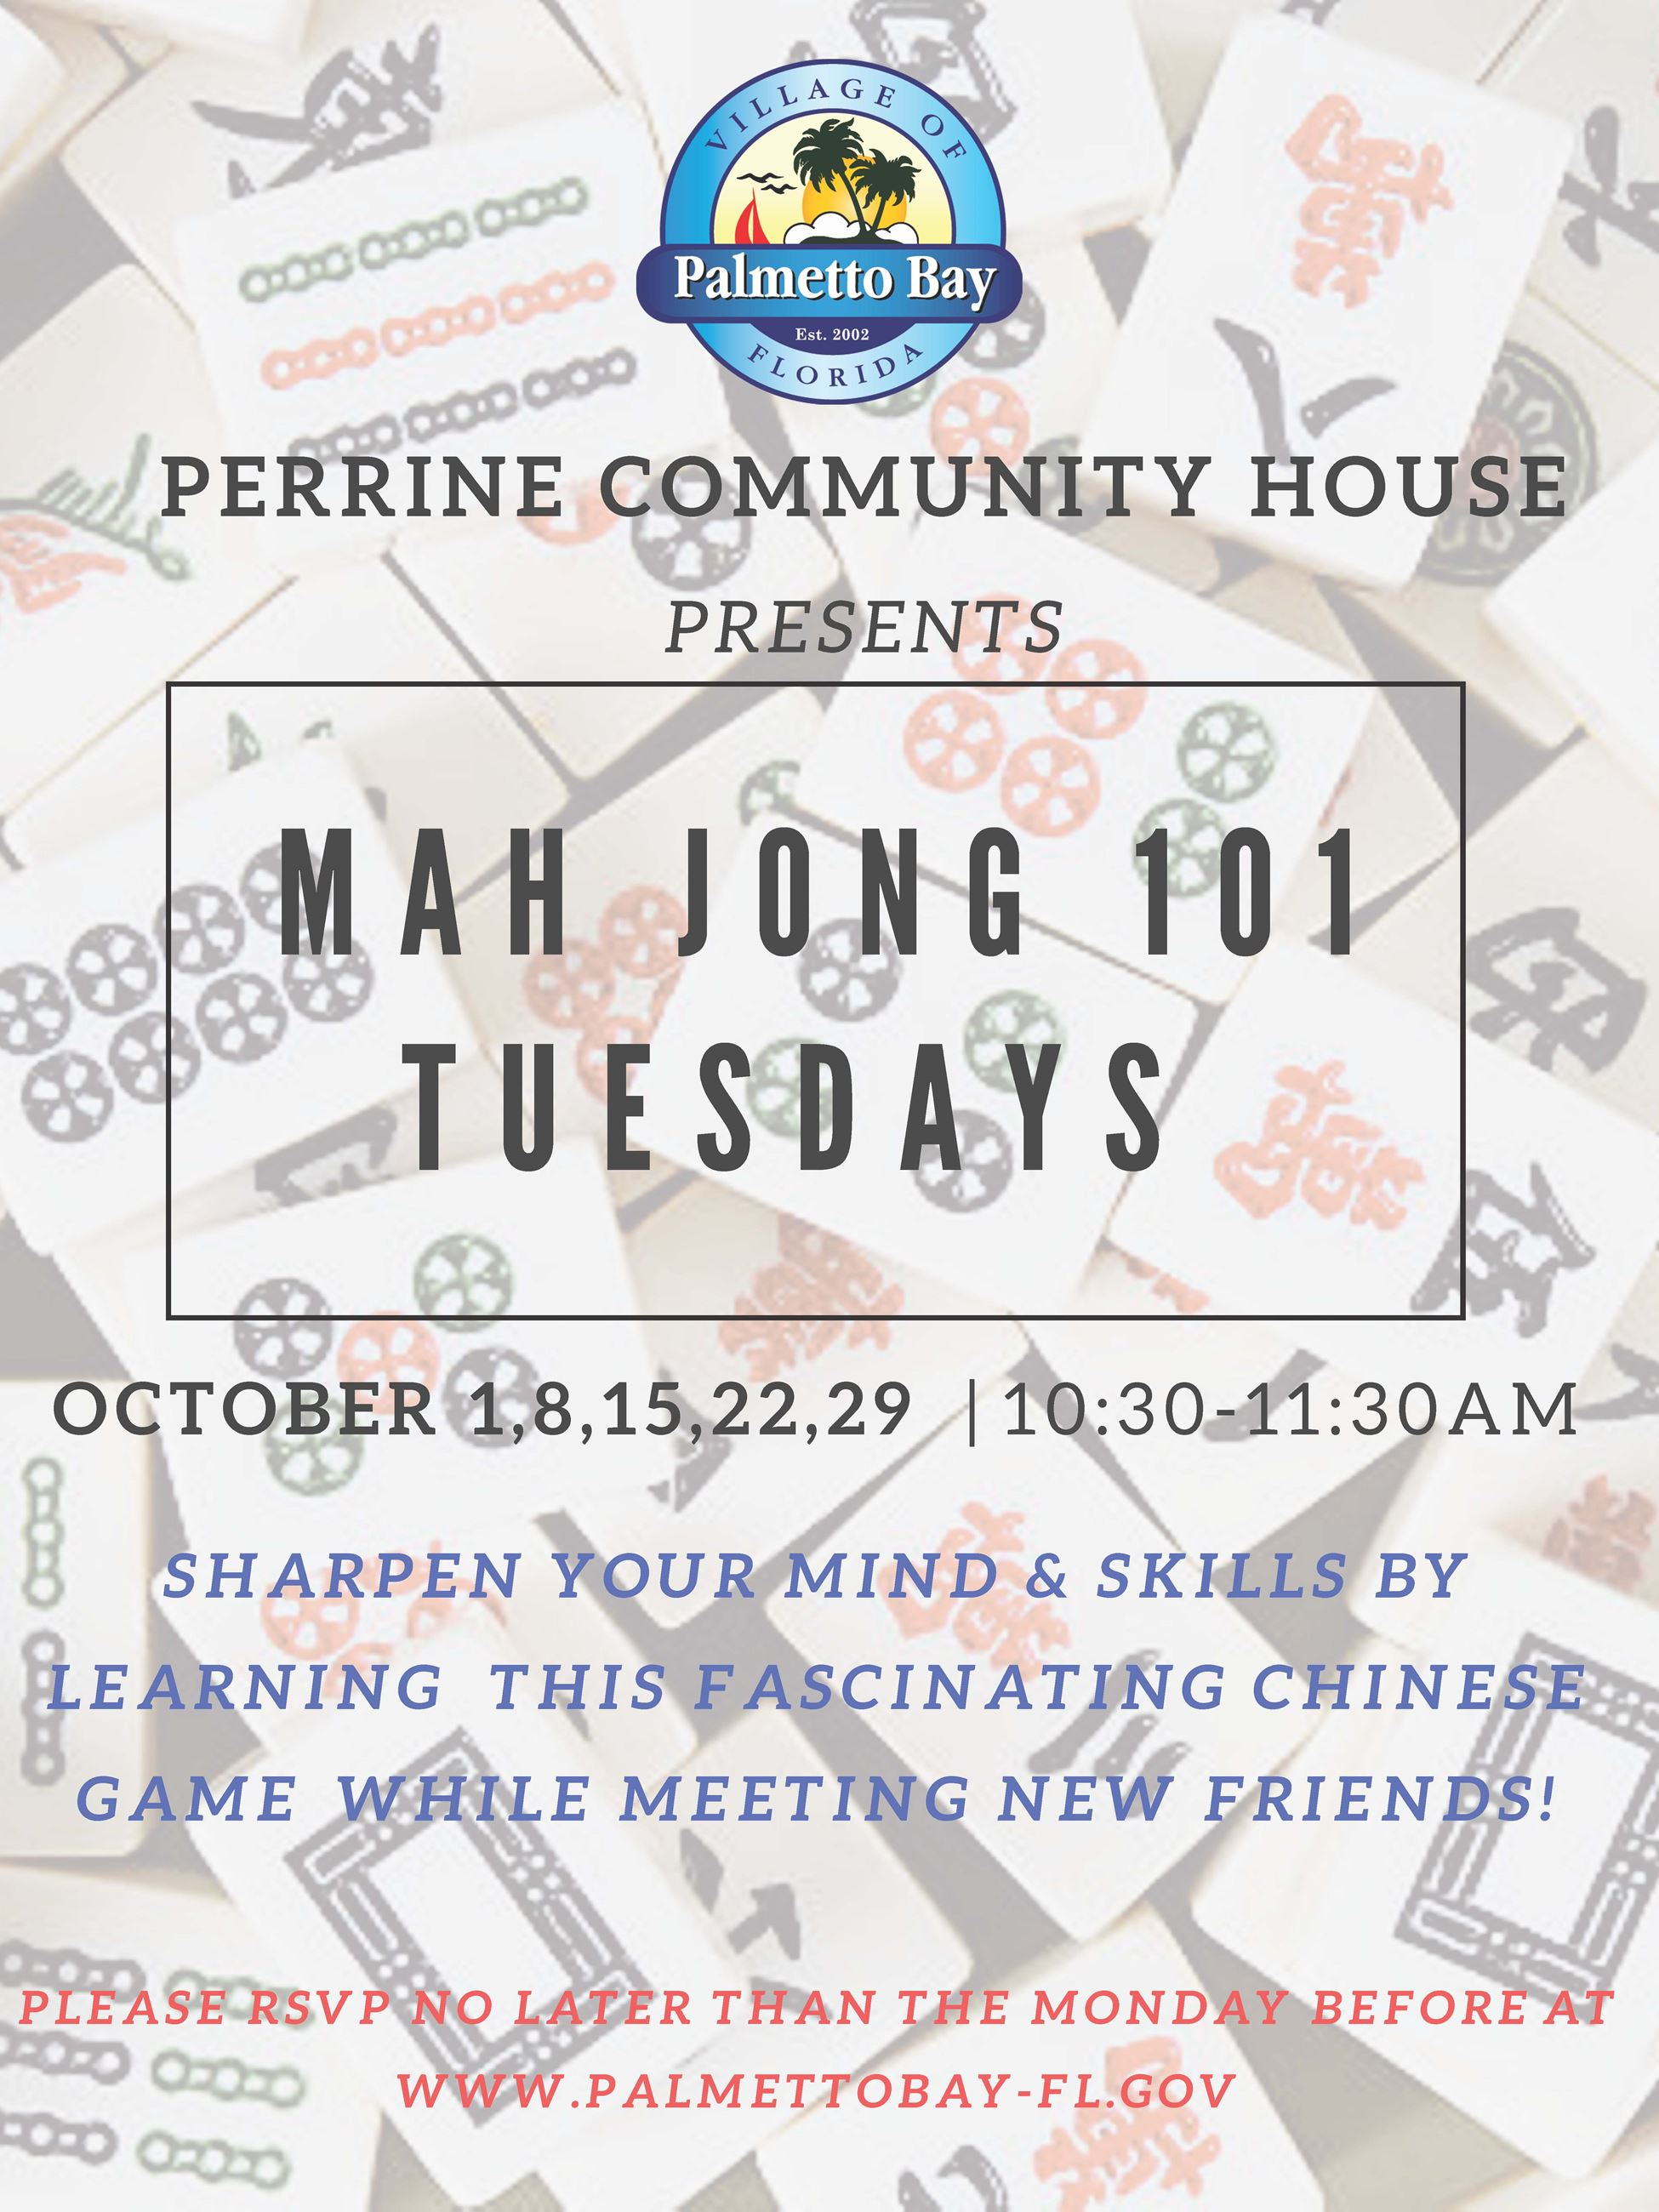 Mah Jong 101, Tuesdays in October from 10:30-11:30am at Perrine Community House